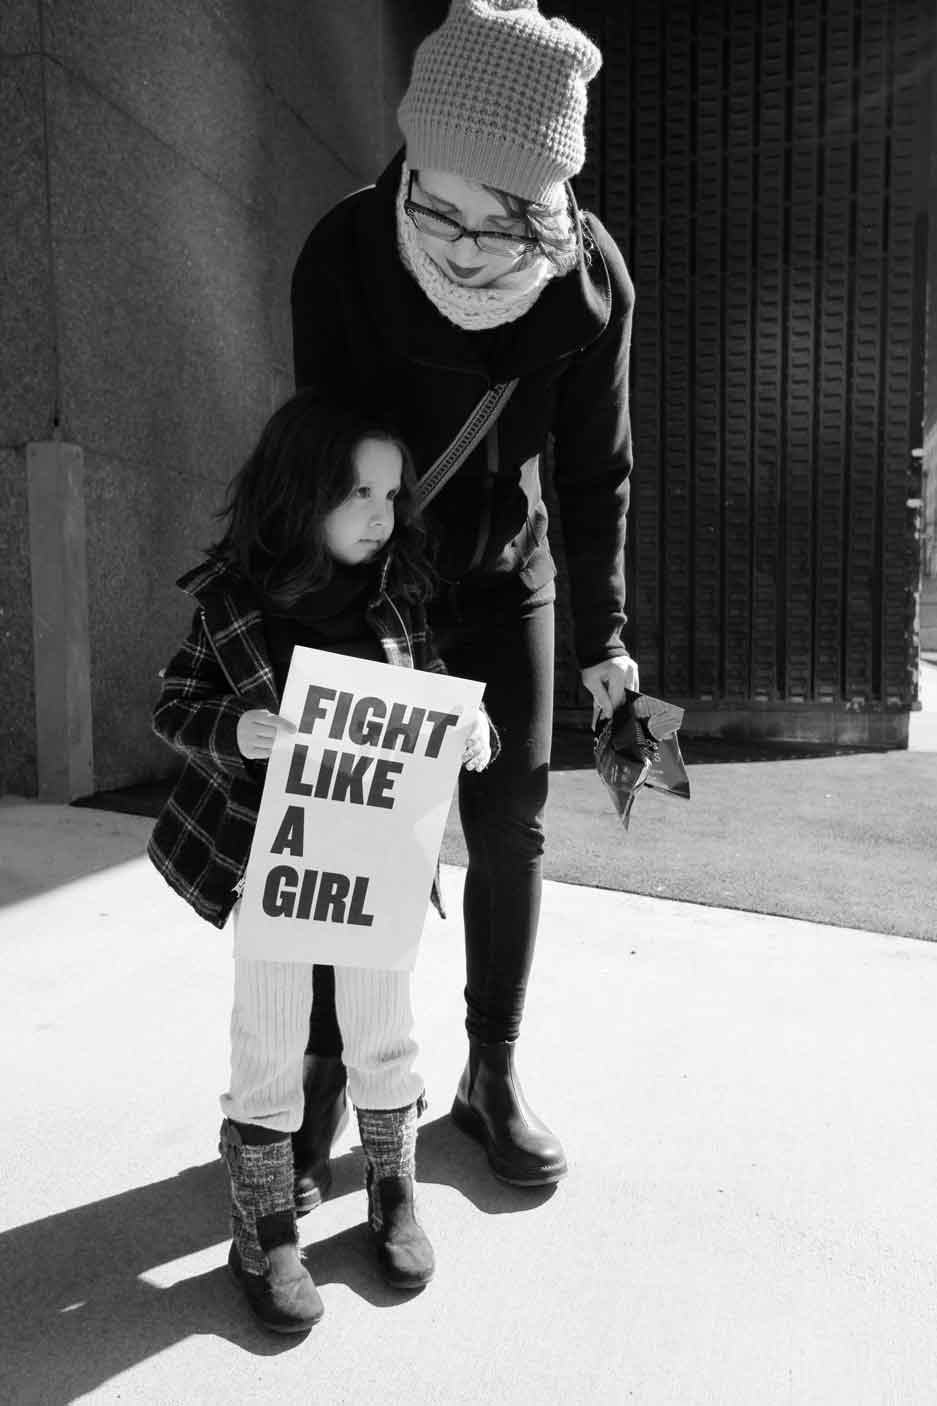 Photo by Rochelle Brown.Fight Like A Girl, United States.